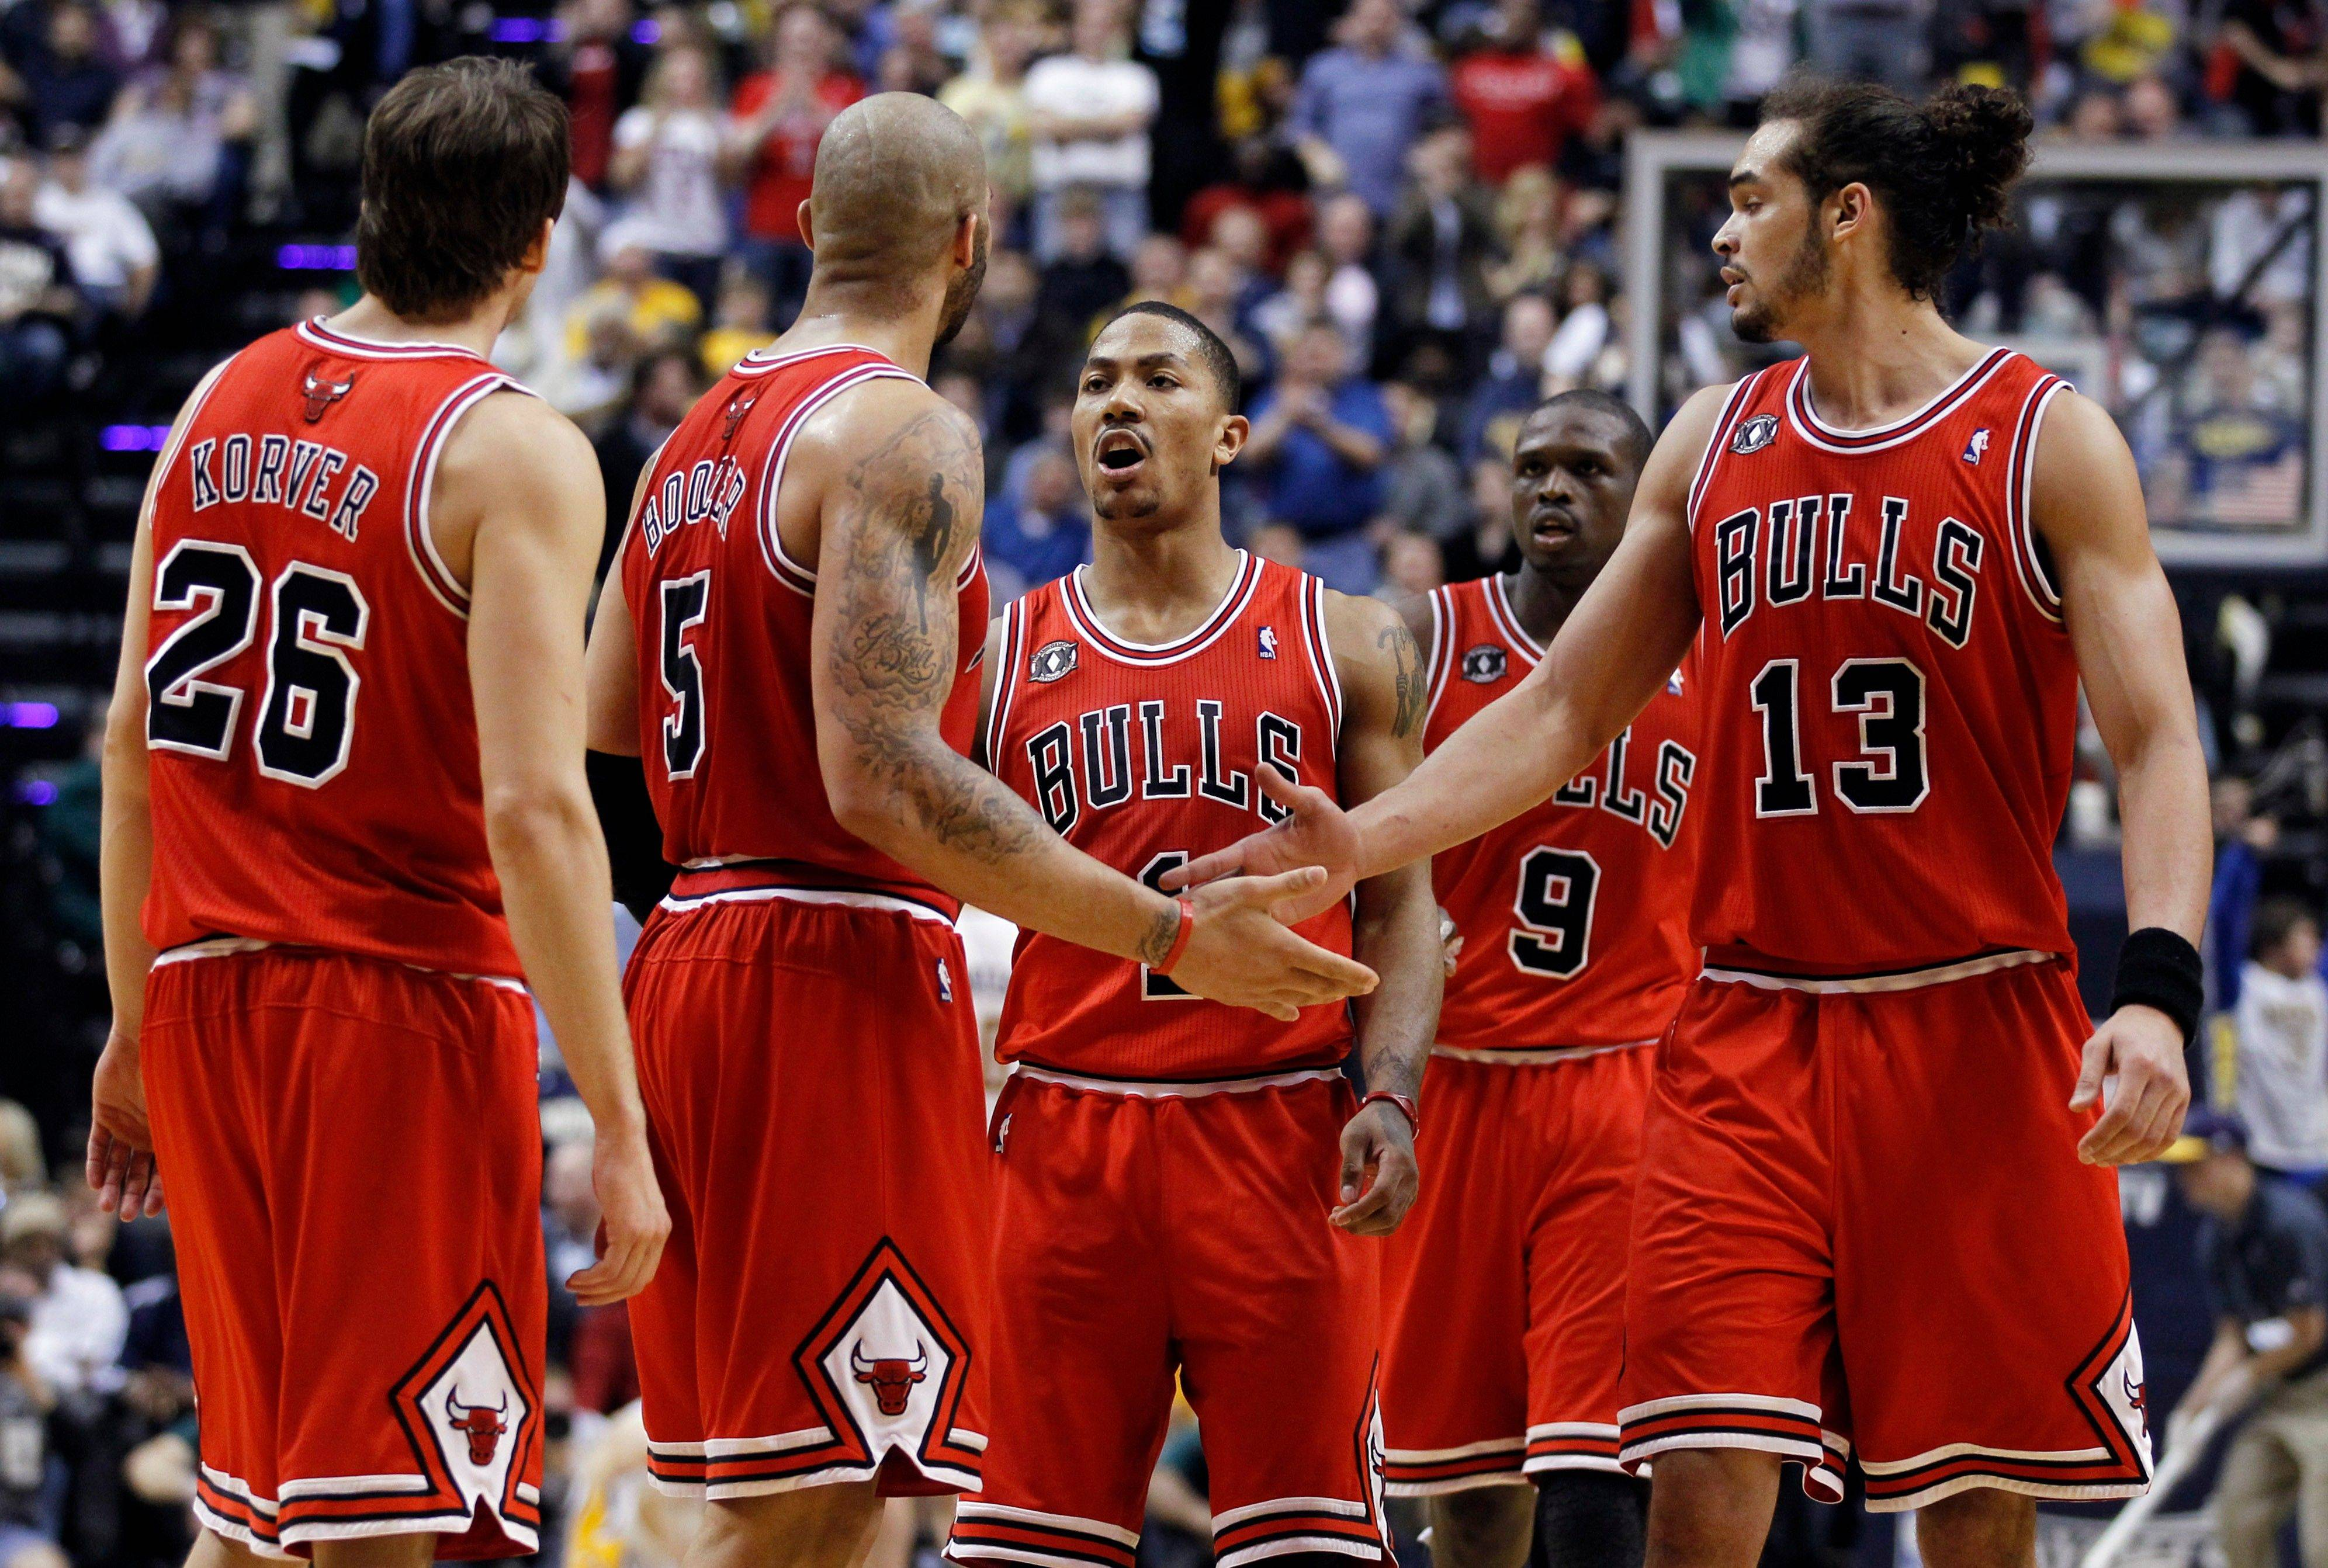 Kyle Korver, from left, Carlos Boozer, Derrick Rose, Luol Deng and Joakim Noah react during Thursday's Game 3 victory over the Pacers at Indiana.